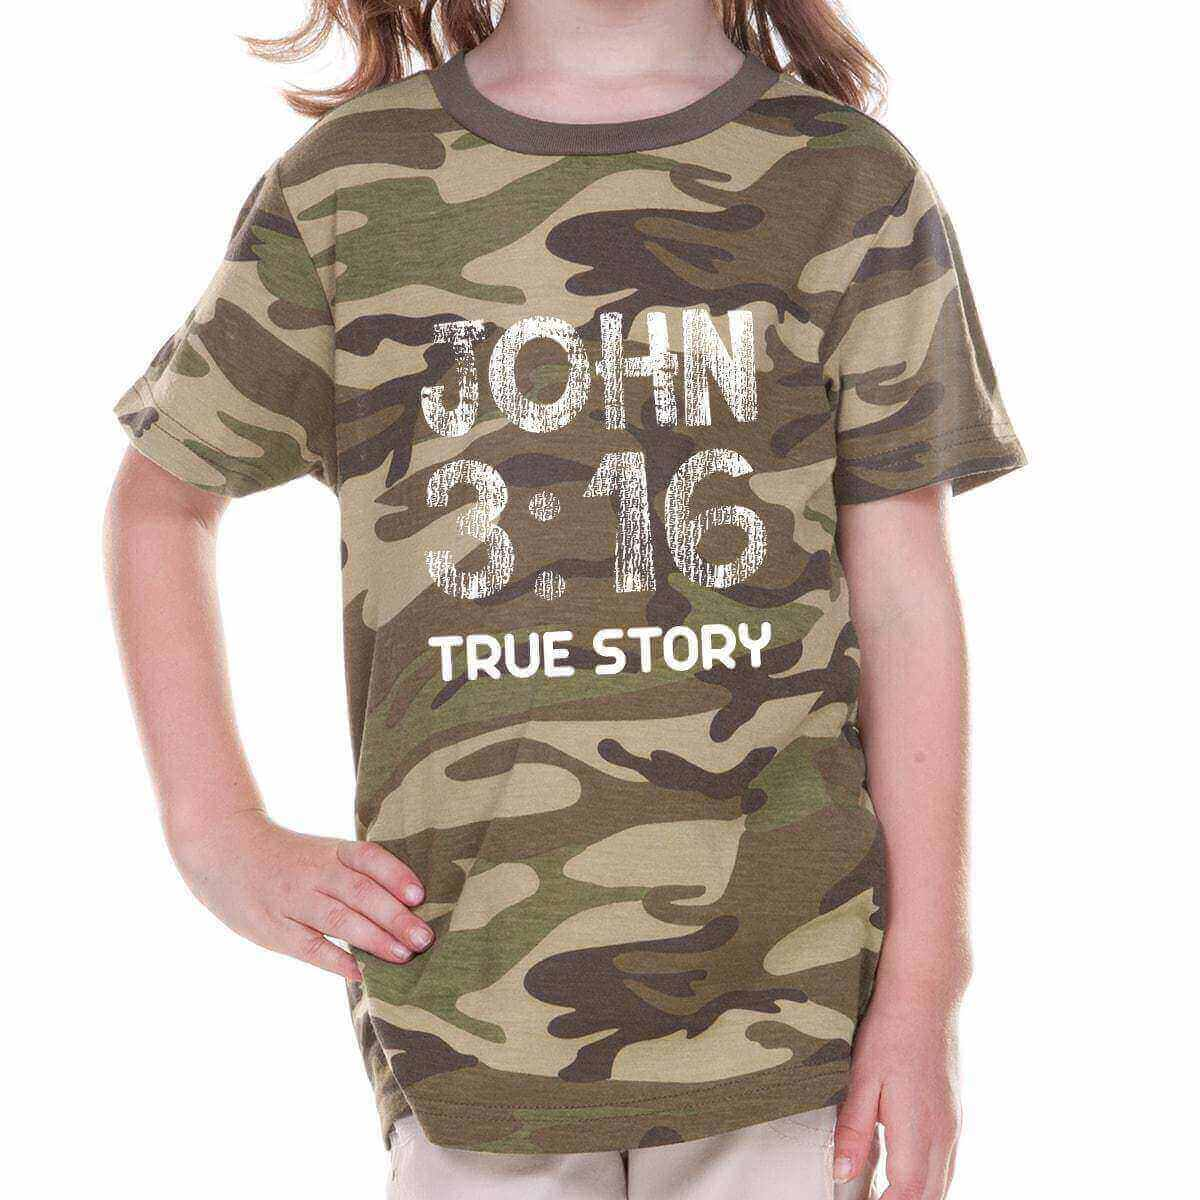 John 3:16 True Story Camouflage Toddler Christian T Shirt